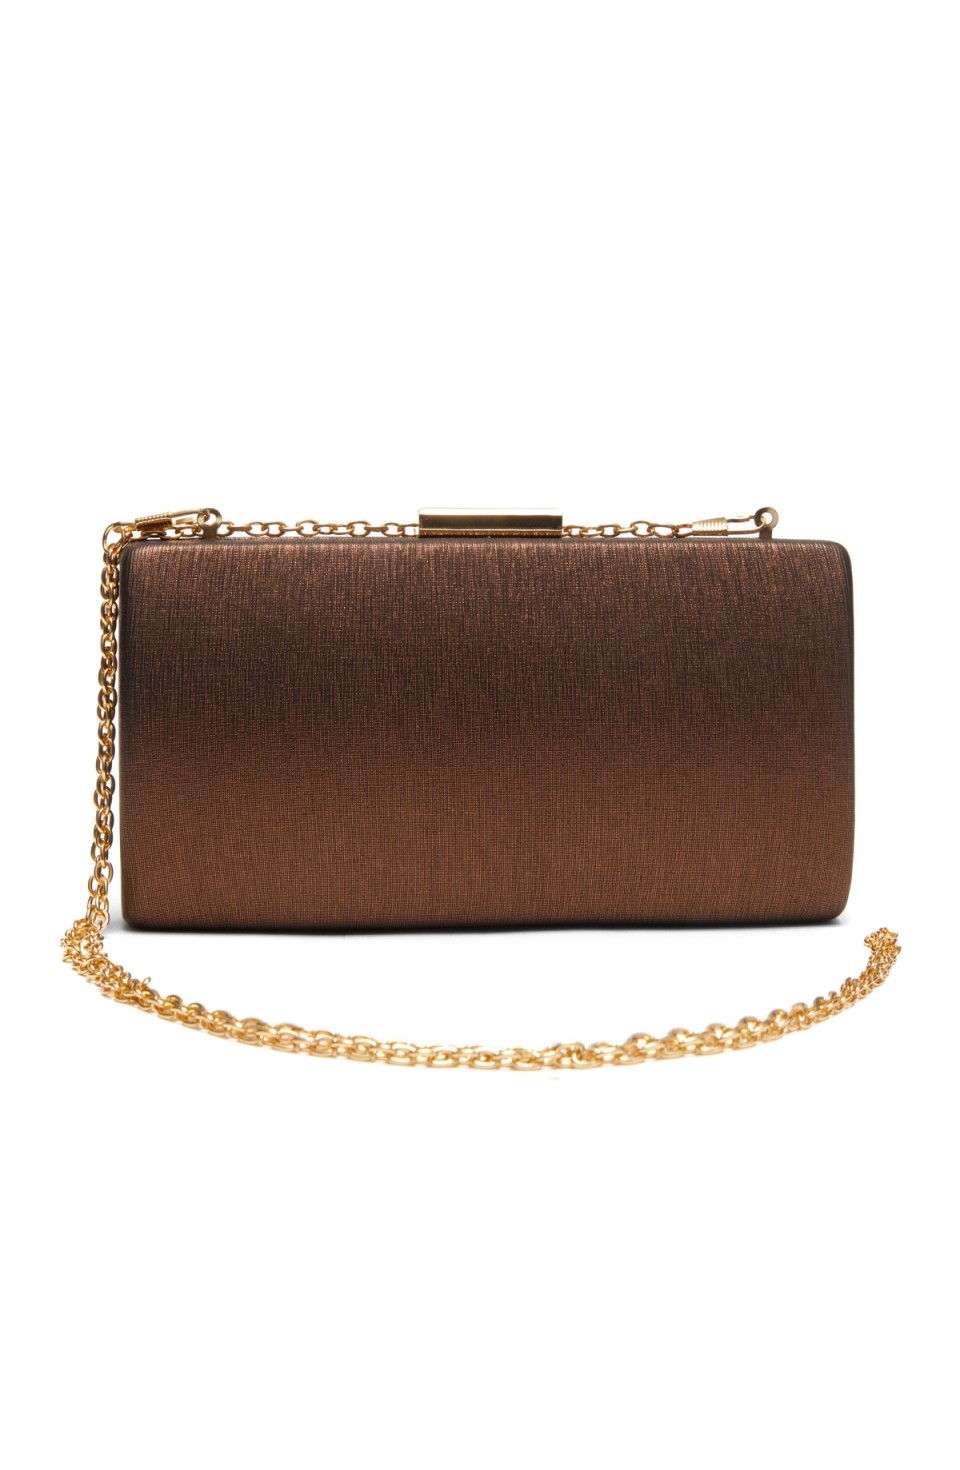 SZ9-16197- Georgeous classic look of hard case evening bag (Brown)